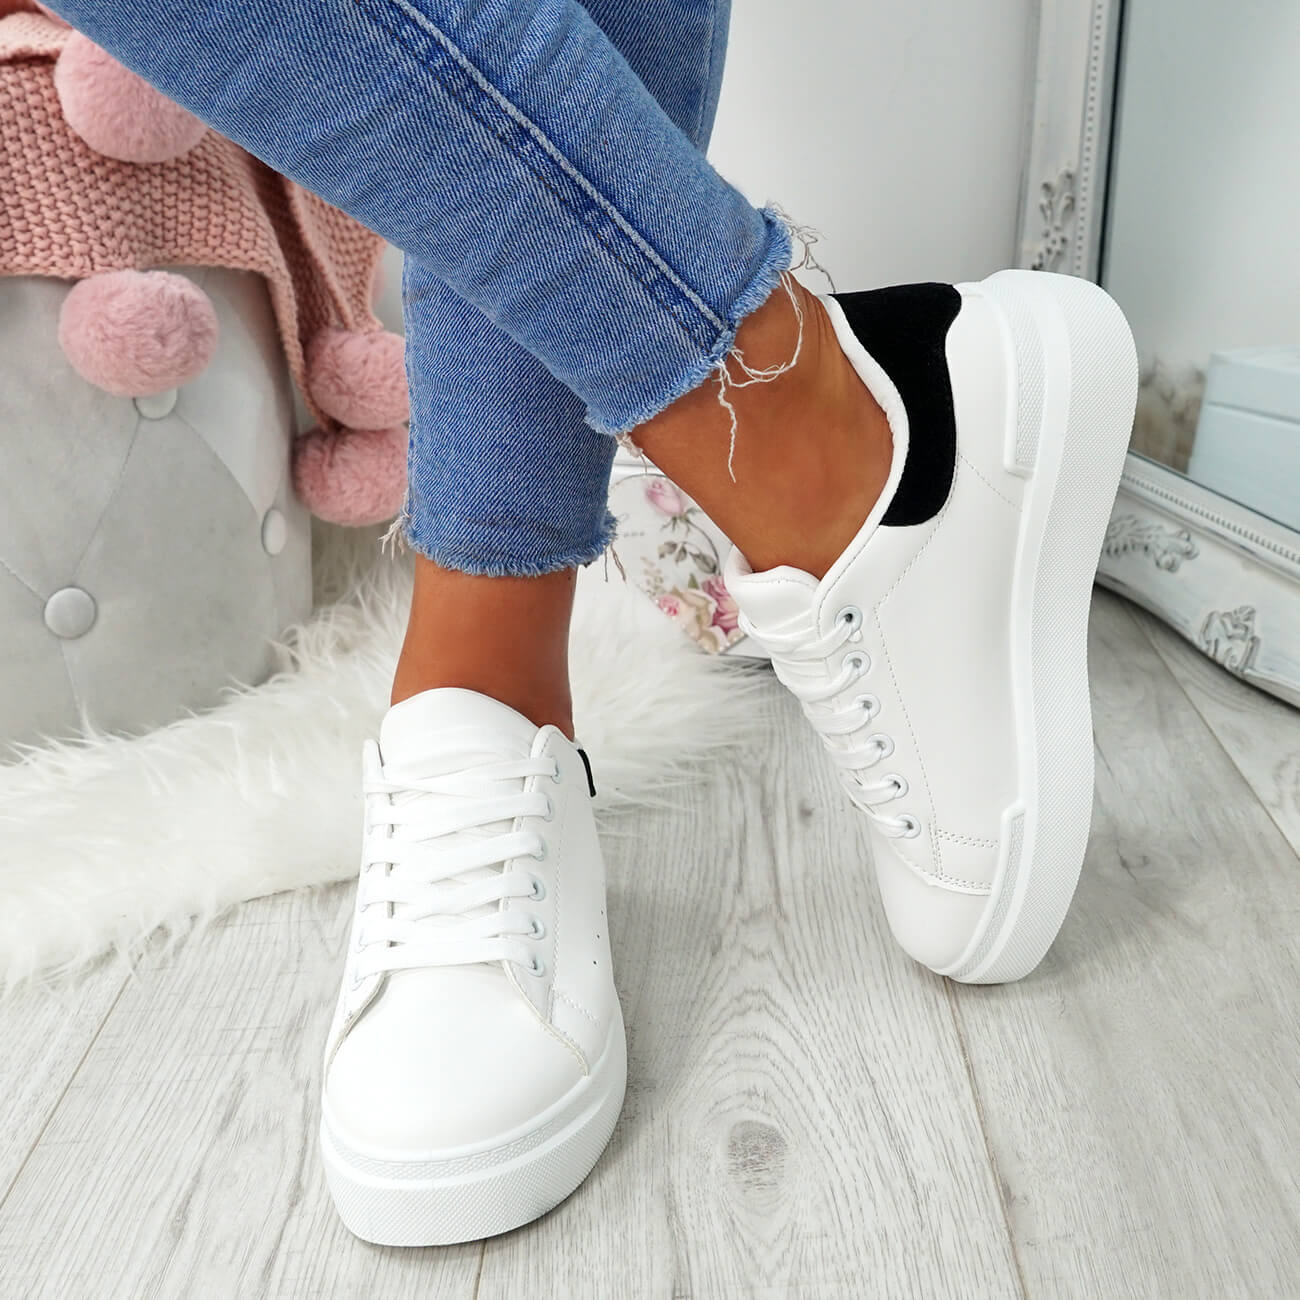 WOMENS-LADIES-LACE-UP-PLIMSOLL-SNEAKERS-CROC-SNAKE-TRAINERS-CASUAL-SHOES-SIZE thumbnail 35